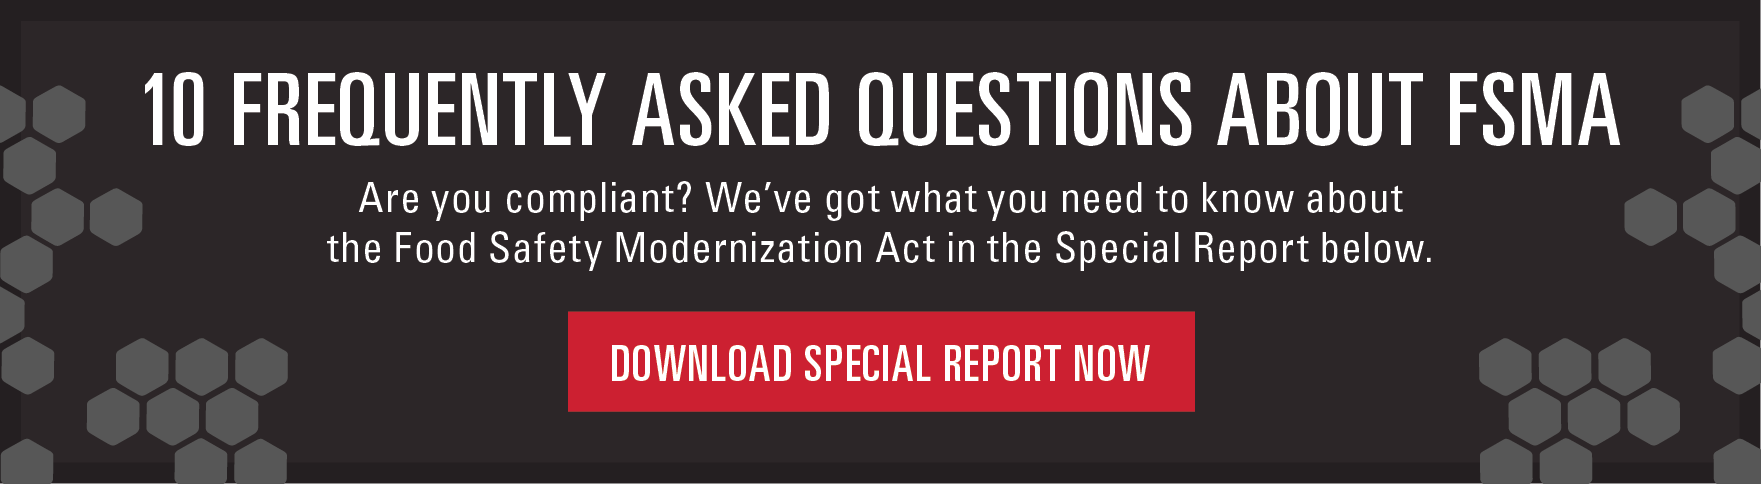 10 Frequently Asked Questions about FSMA